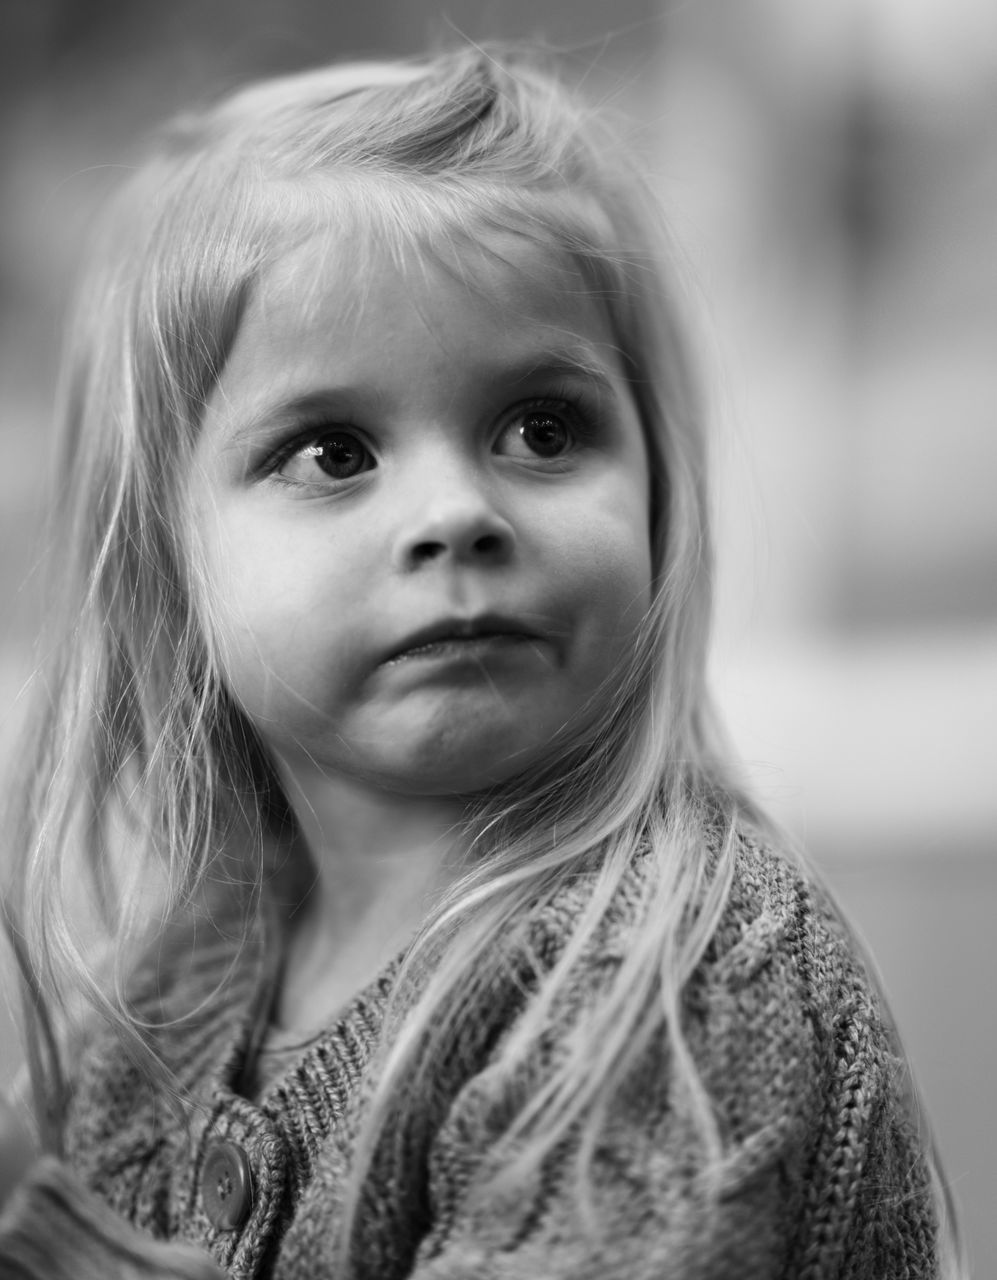 childhood, looking at camera, one person, real people, cute, innocence, portrait, focus on foreground, blond hair, front view, headshot, girls, close-up, outdoors, human face, day, warm clothing, people